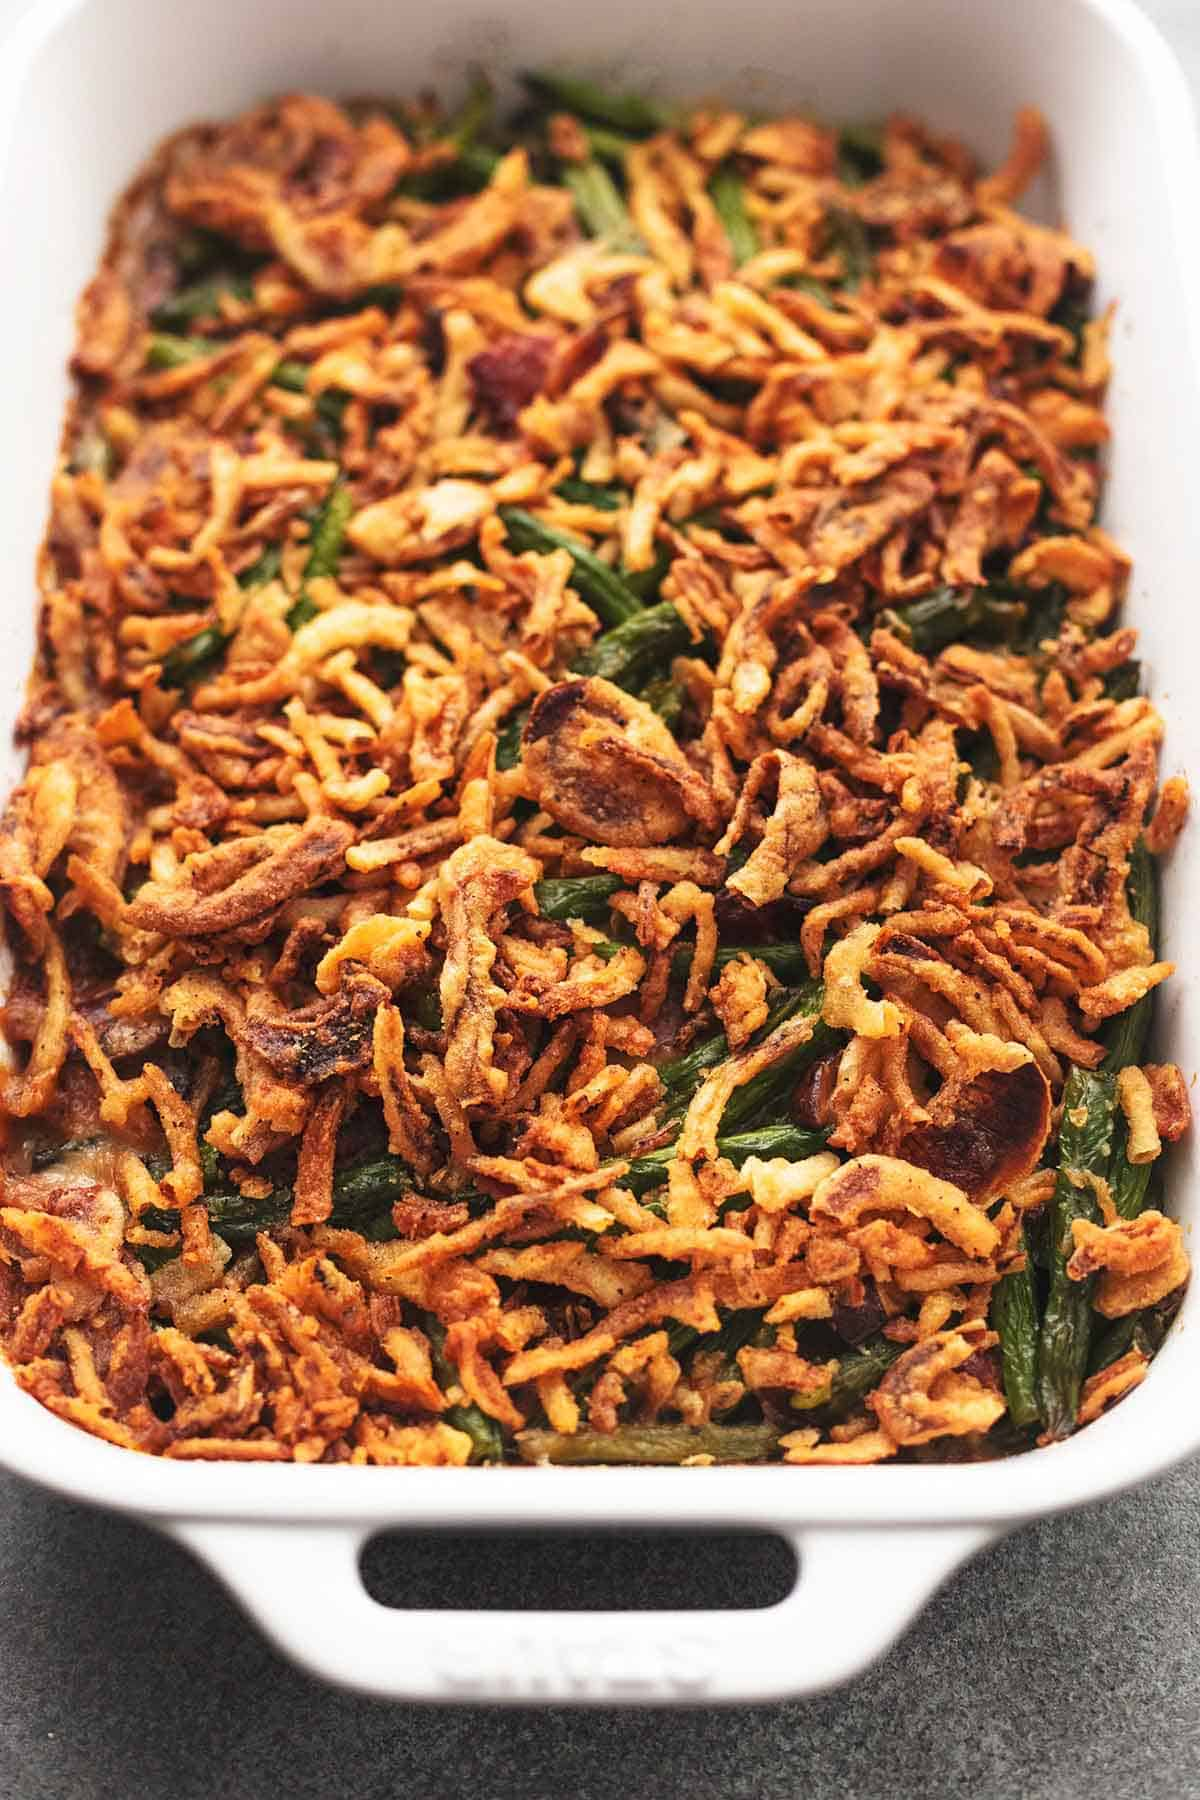 white casserole dish with crispy fried onions on top of green beans